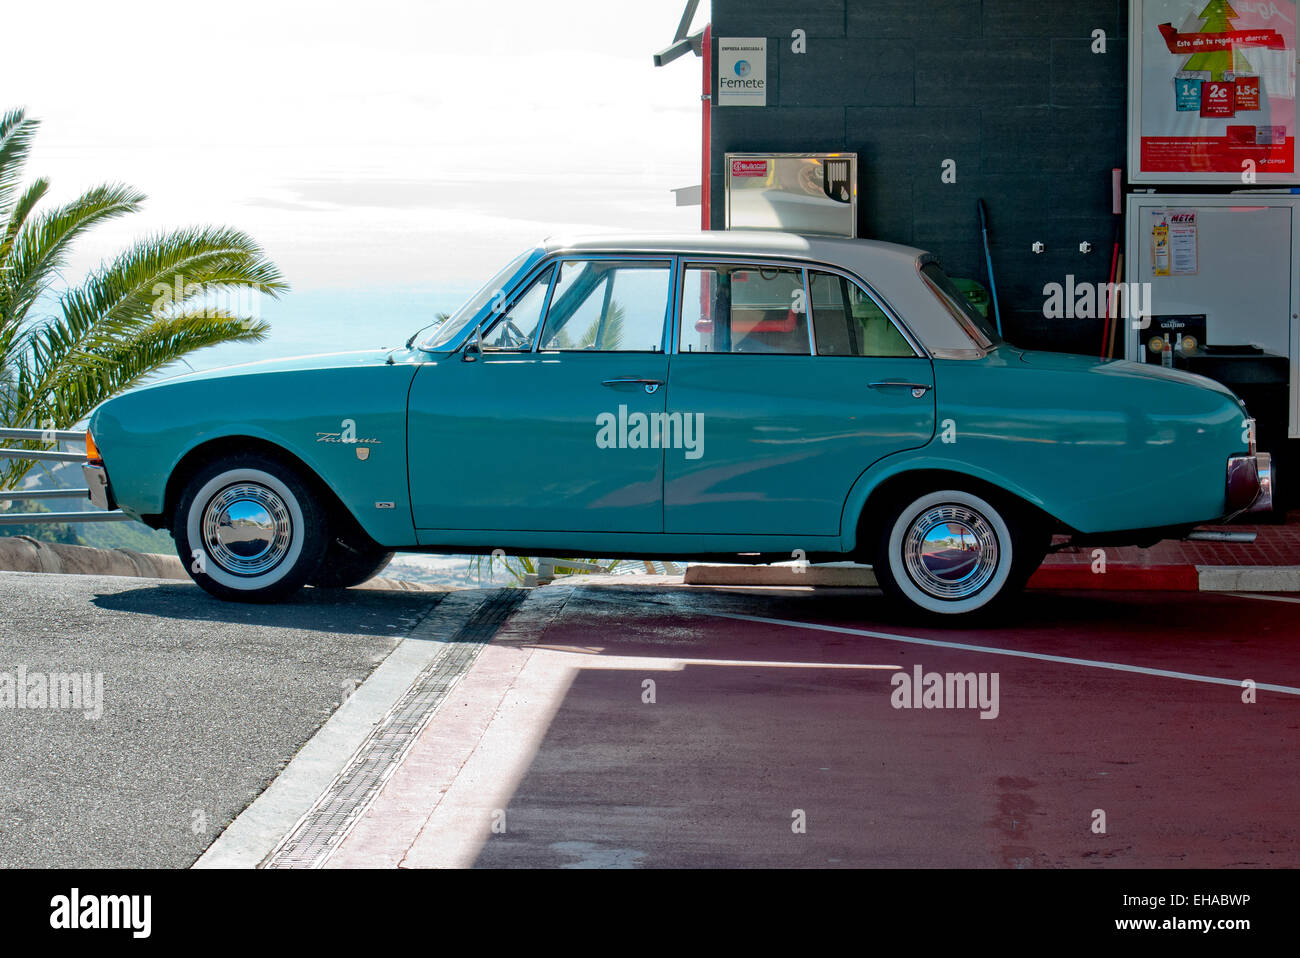 car ford taunus 17m p3 bath tub blue model year 1960 1964 EHABWP